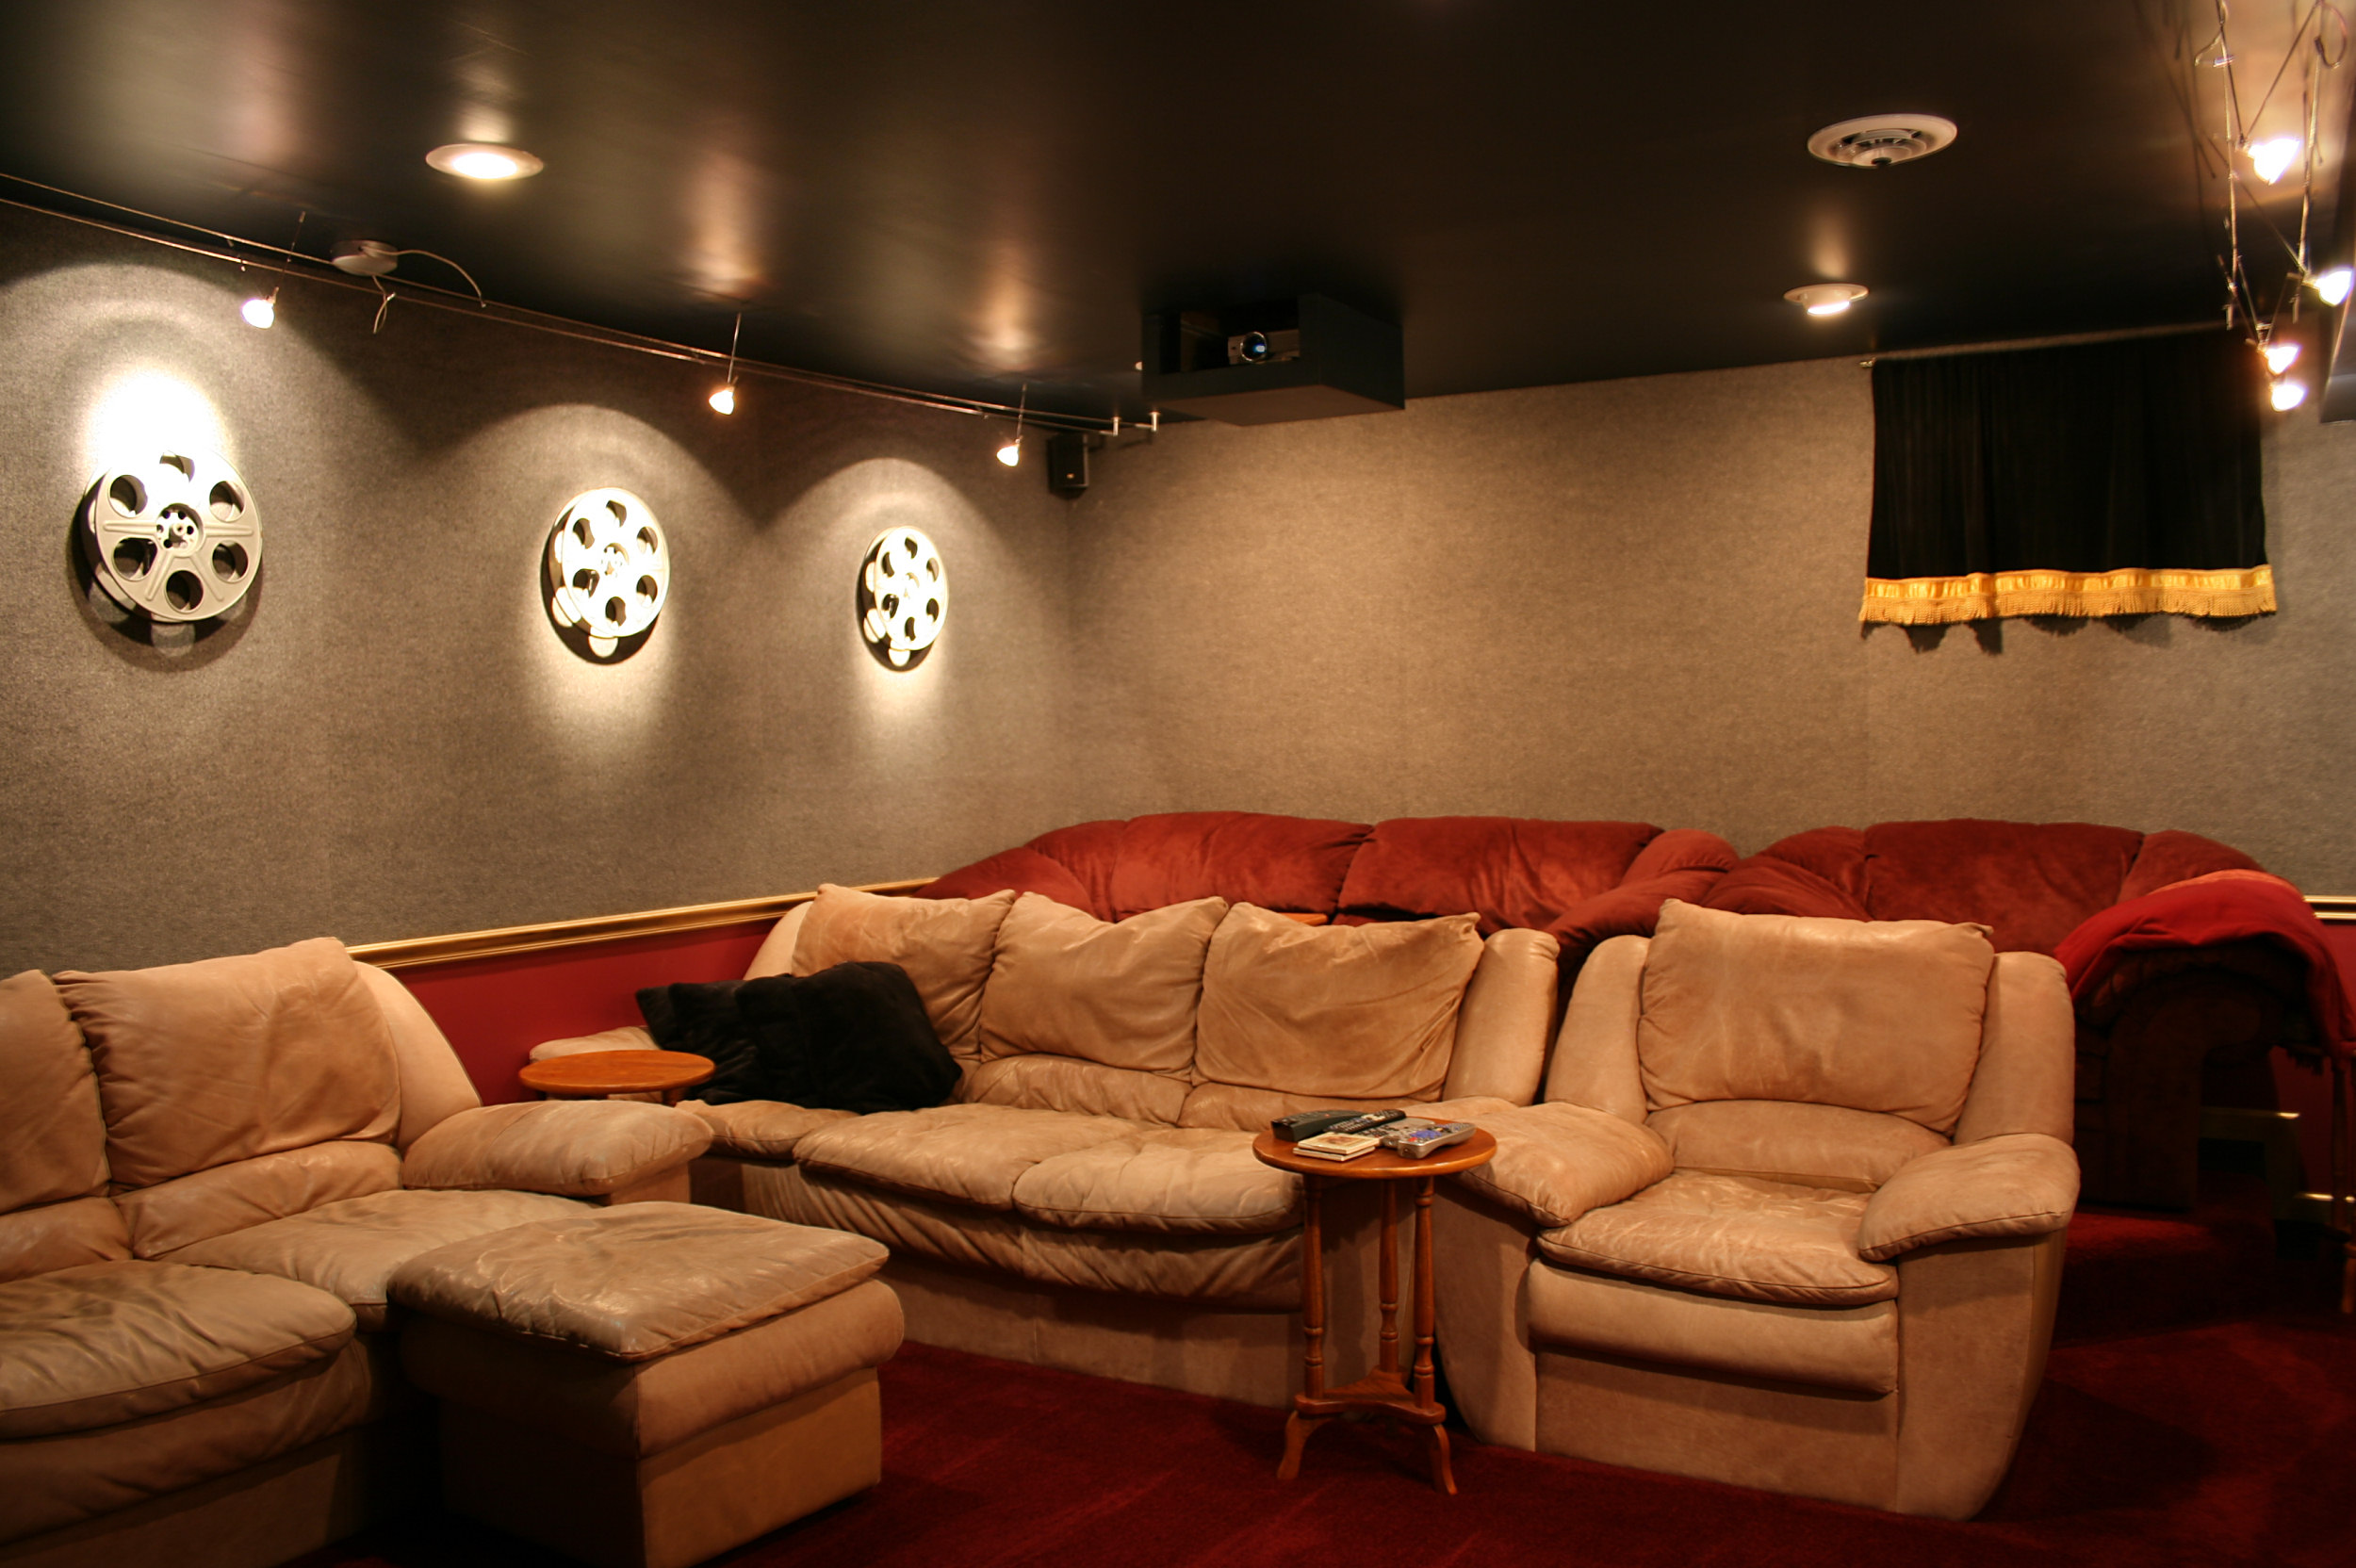 FileHome theater tystojpg Wikimedia Commons